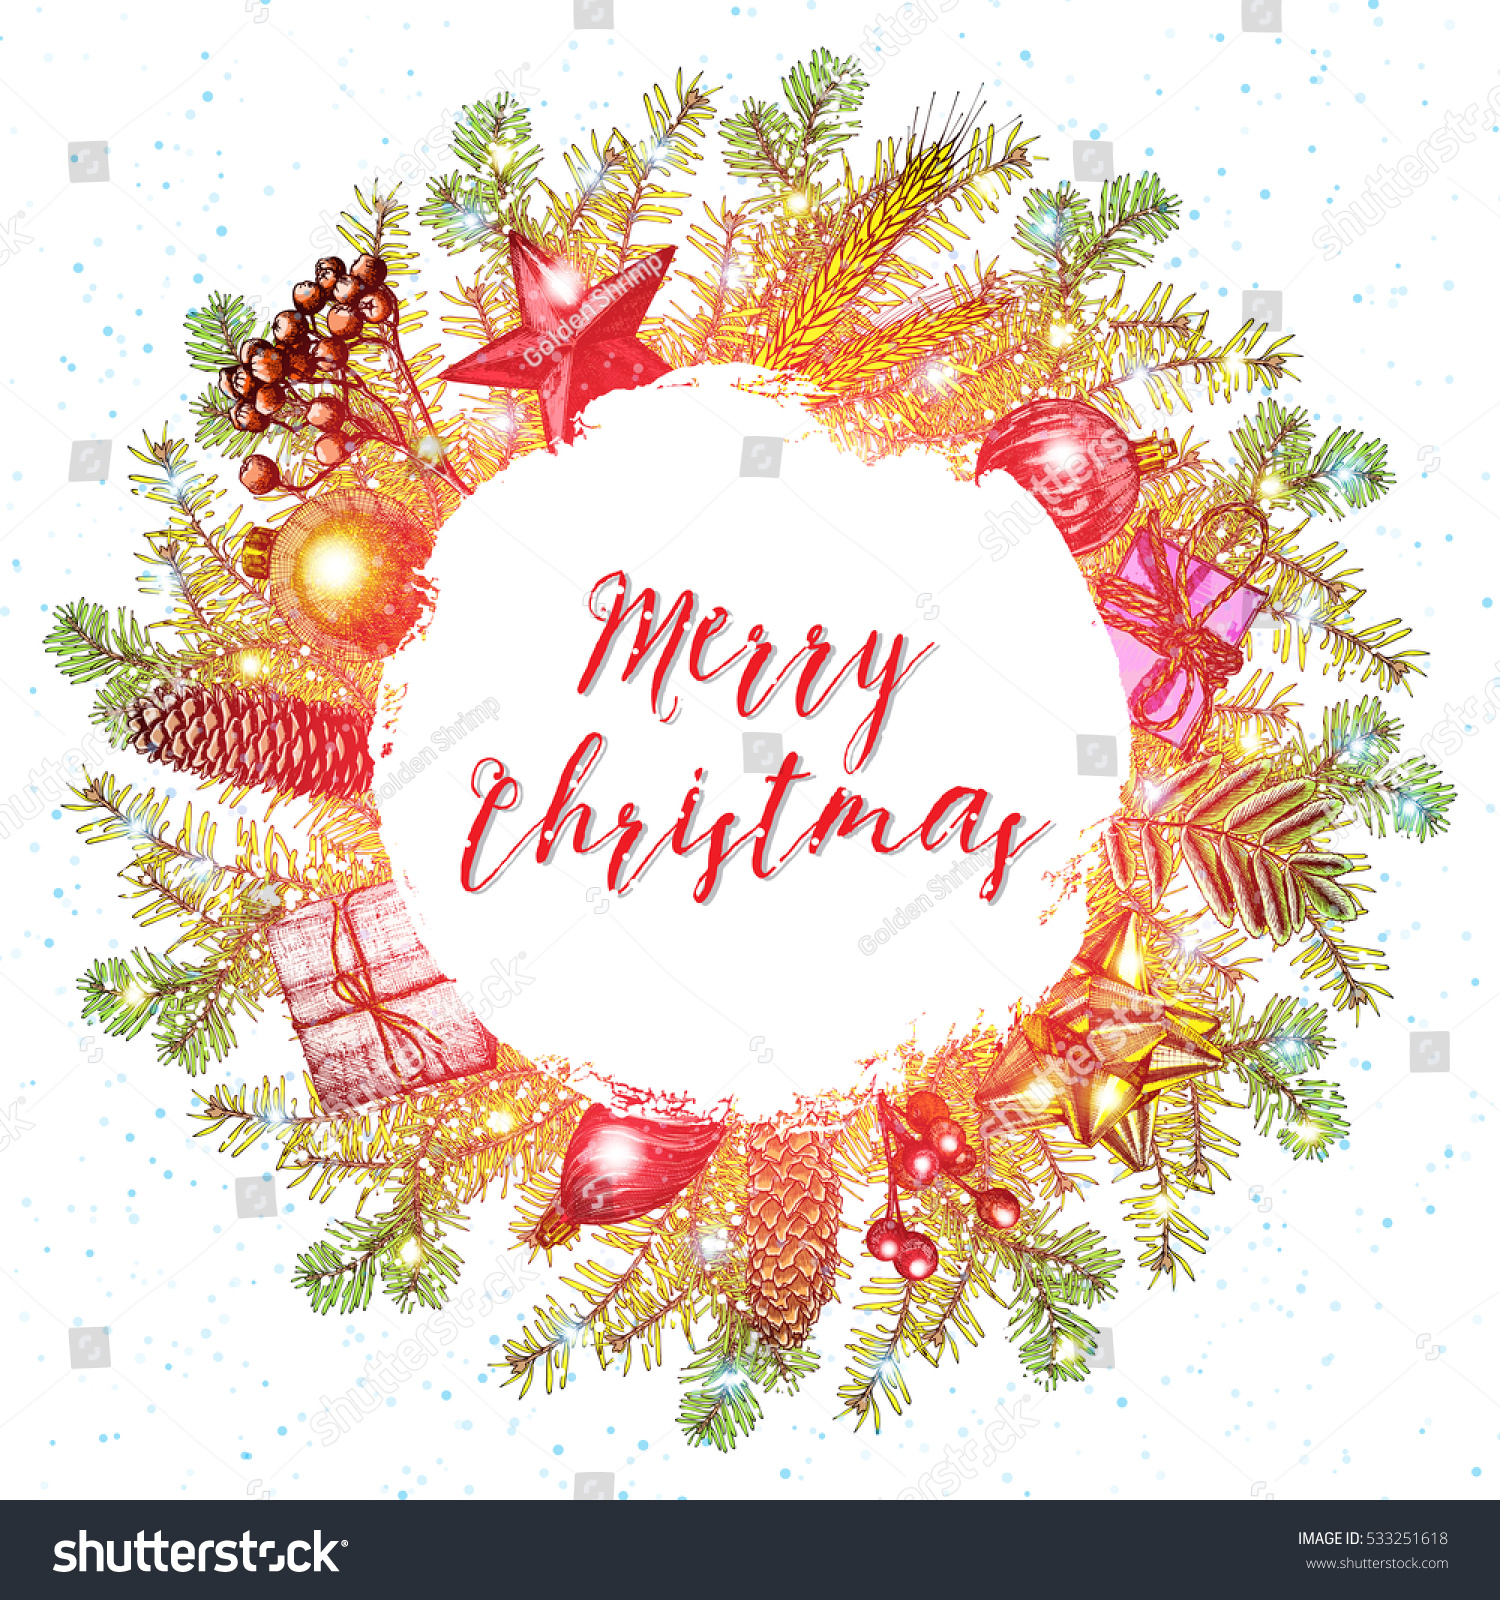 Merry christmas text calligraphic lettering design stock vector merry christmas text calligraphic lettering design card template handdrawn creative typography for holiday greeting kristyandbryce Image collections